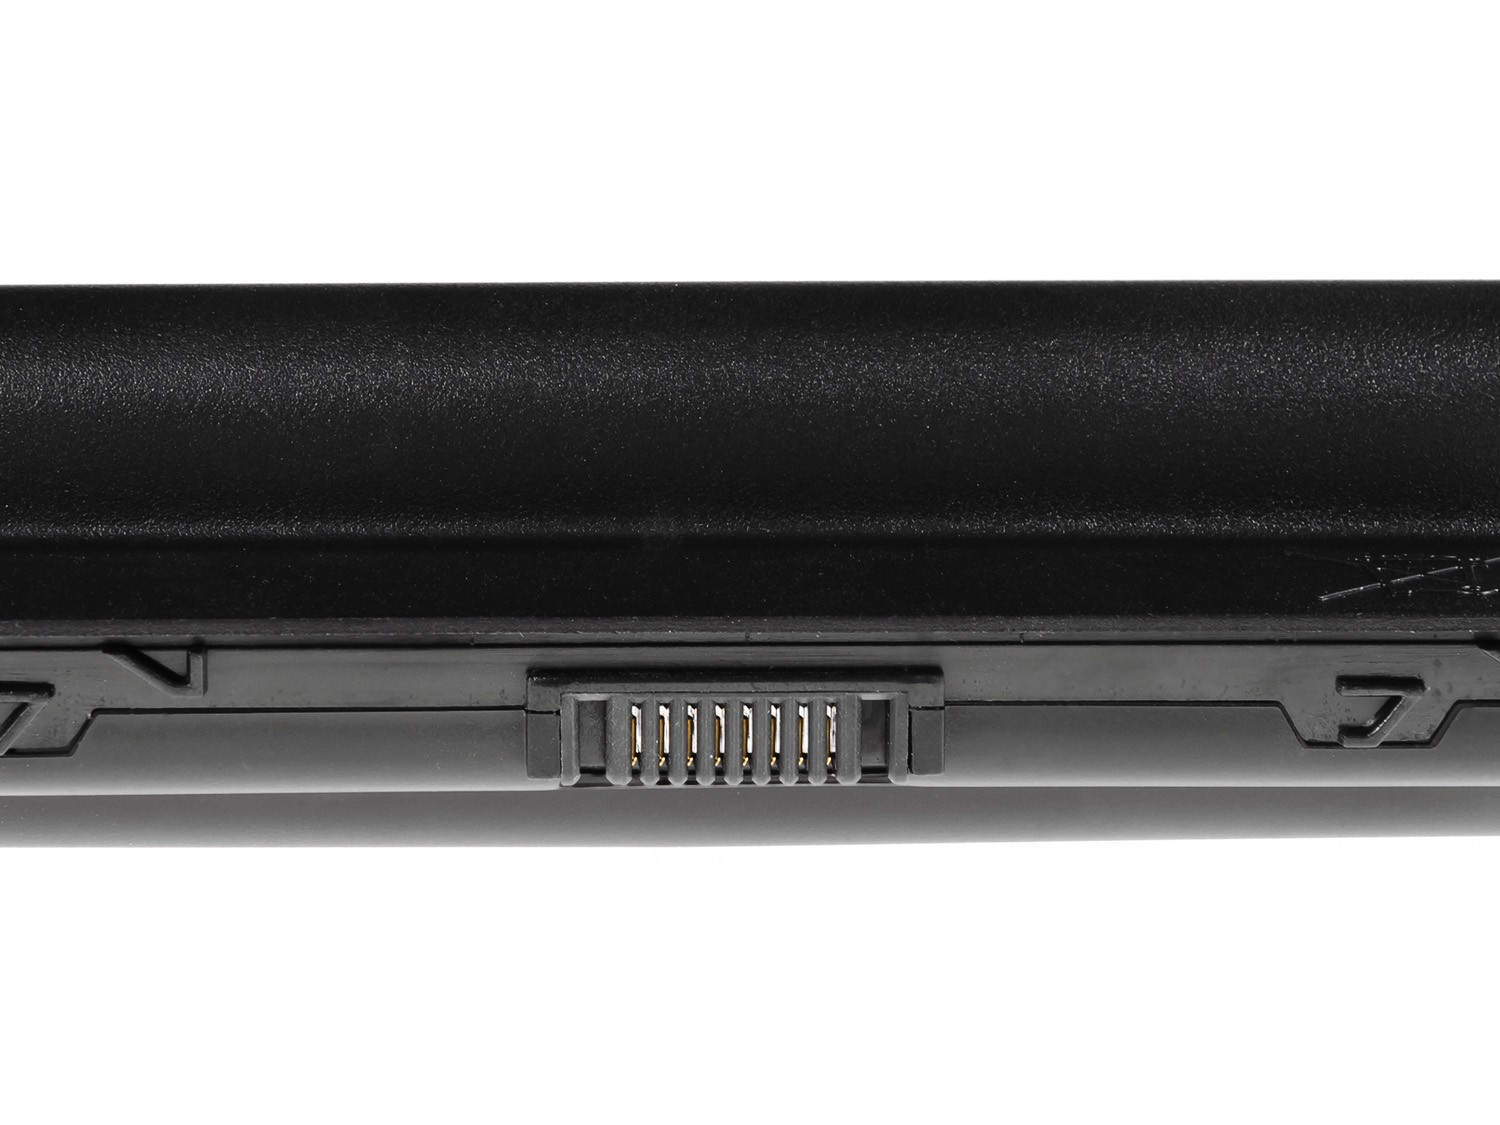 Green Cell AC07PRO Baterie Acer AS10D31/AS10D3E/AS10D41/AS10D51/AS10D56/AS10D61/AS10D71 7800 mAh Li-ion - neoriginální